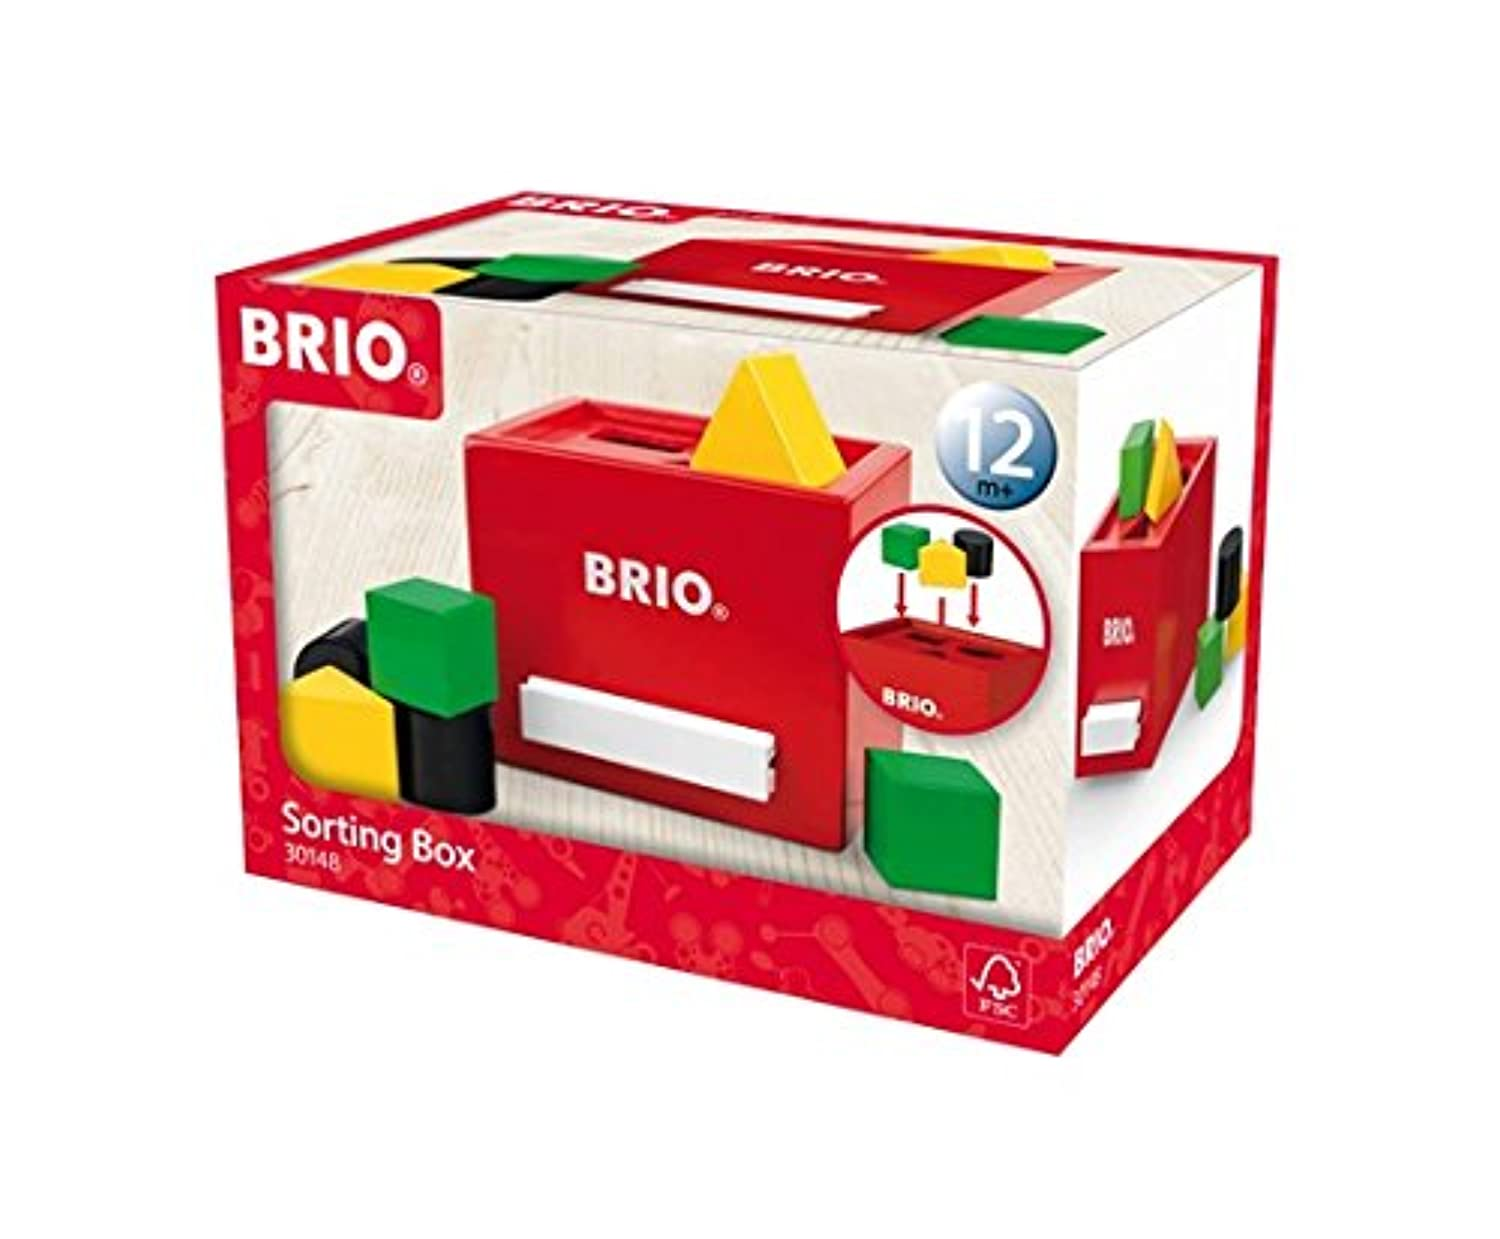 Brio 7 Piece木製ソートボックス幼児用Toy with正方形三角形と円